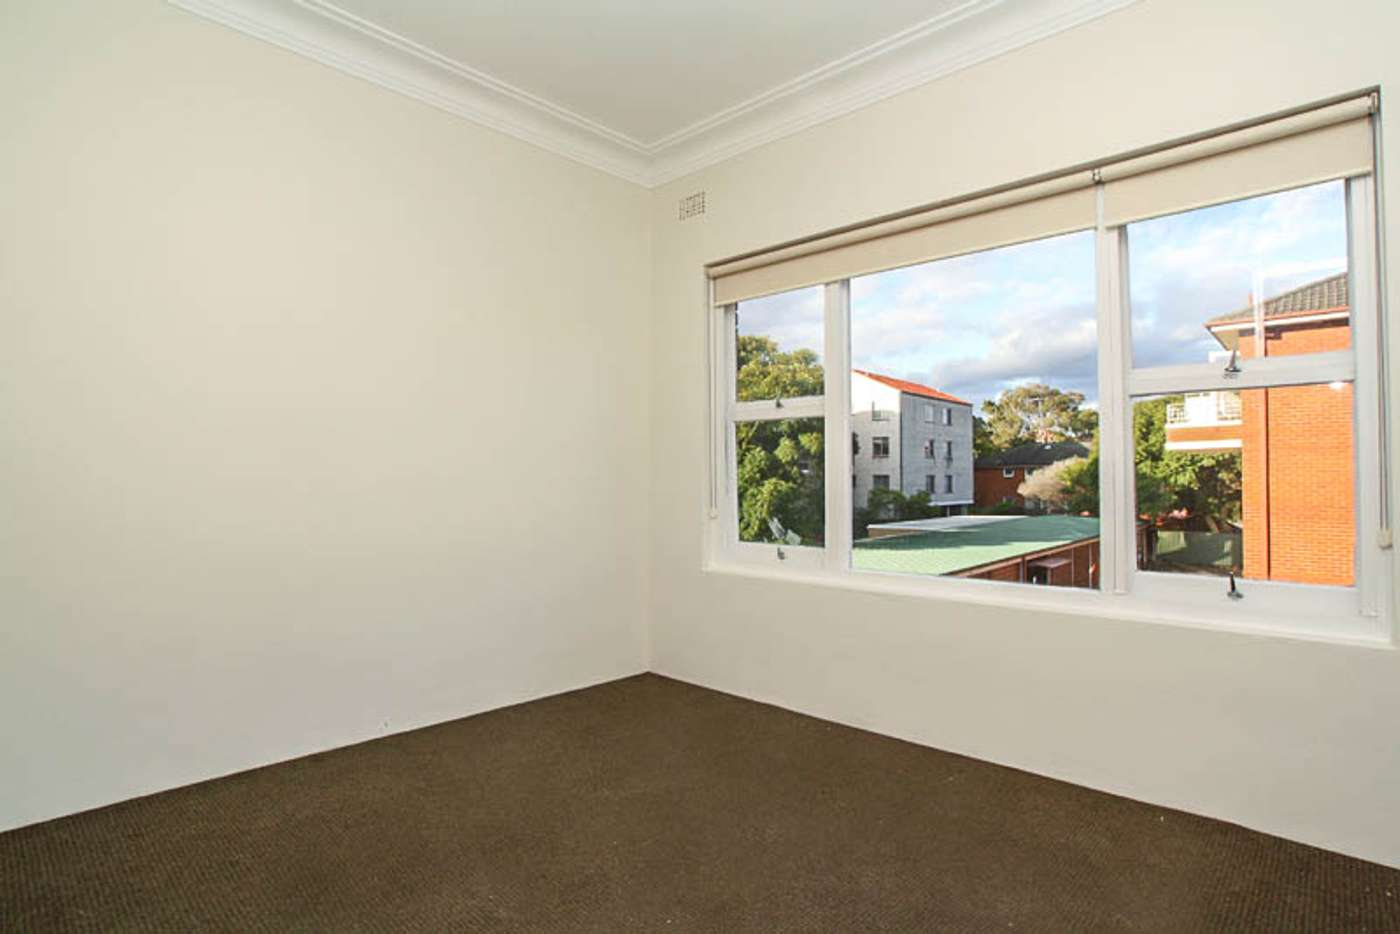 Sixth view of Homely unit listing, 44 Banks Street, Monterey NSW 2217